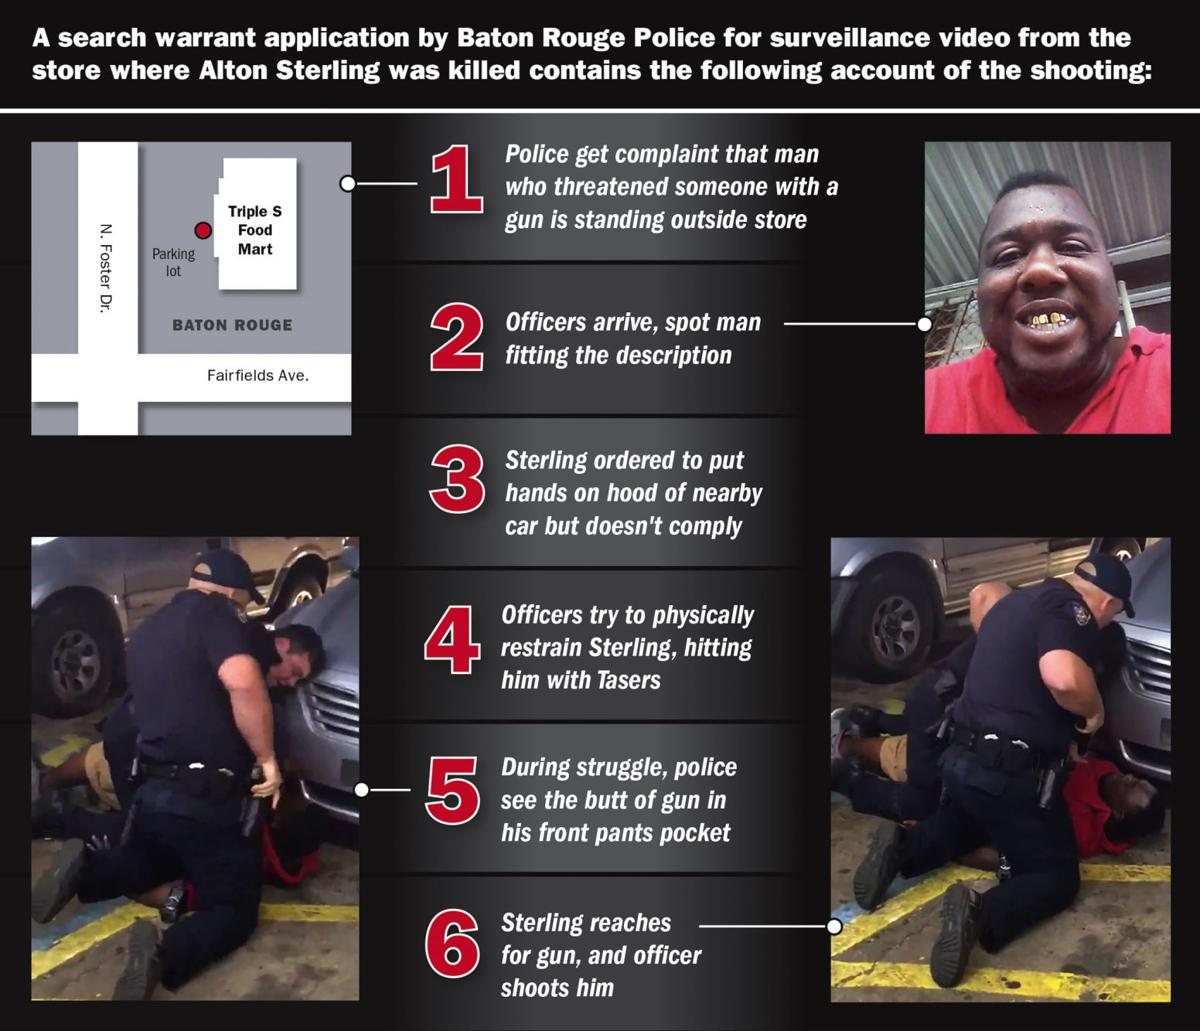 Sterling S Restaurant: Search Warrant: Baton Rouge Police Officers Spotted Butt